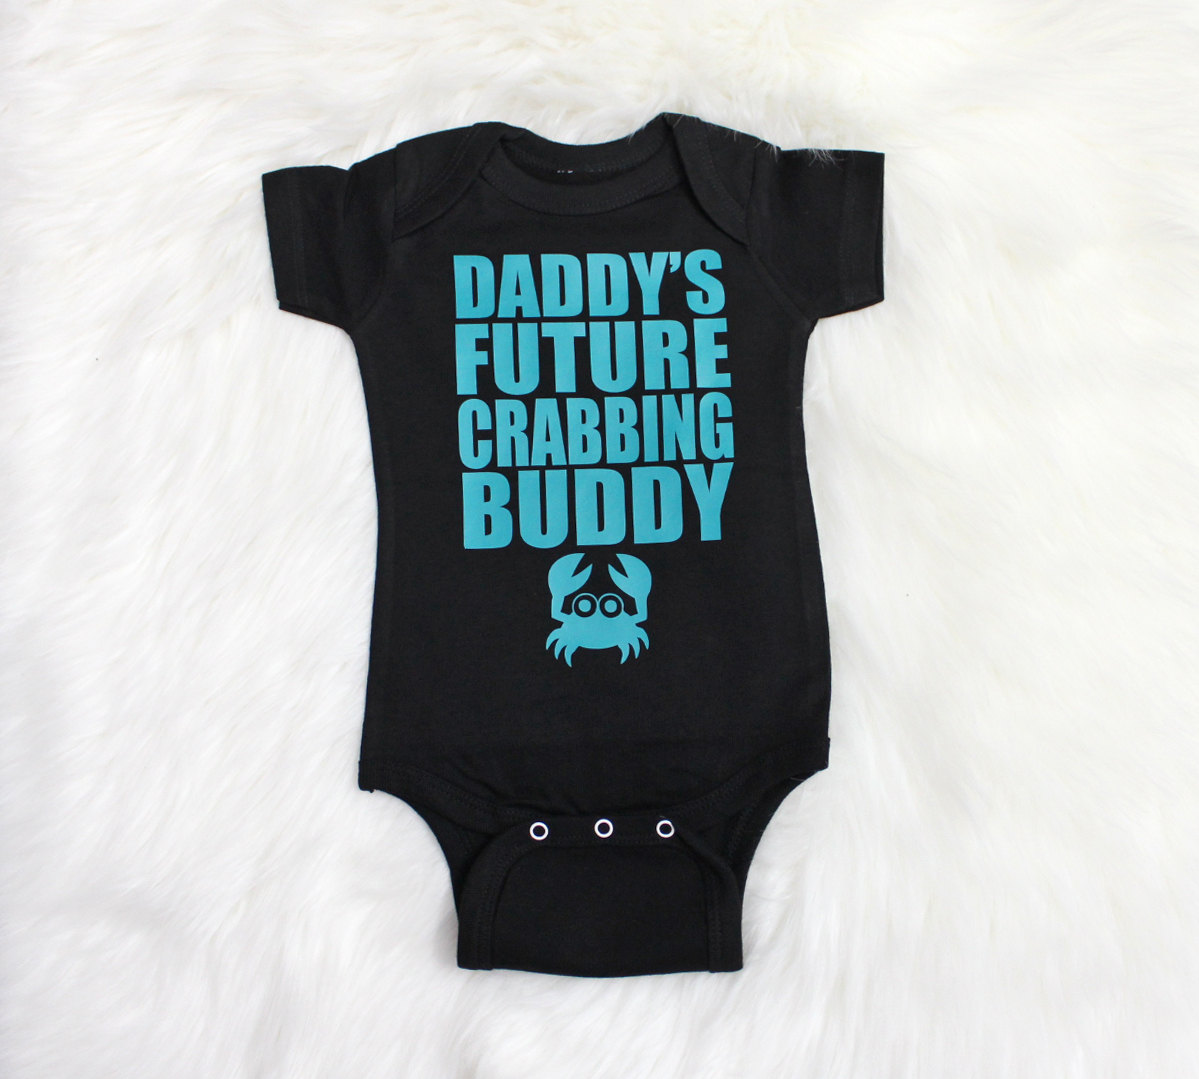 daddys future crabbing buddy baby clothes printed in teal, baby